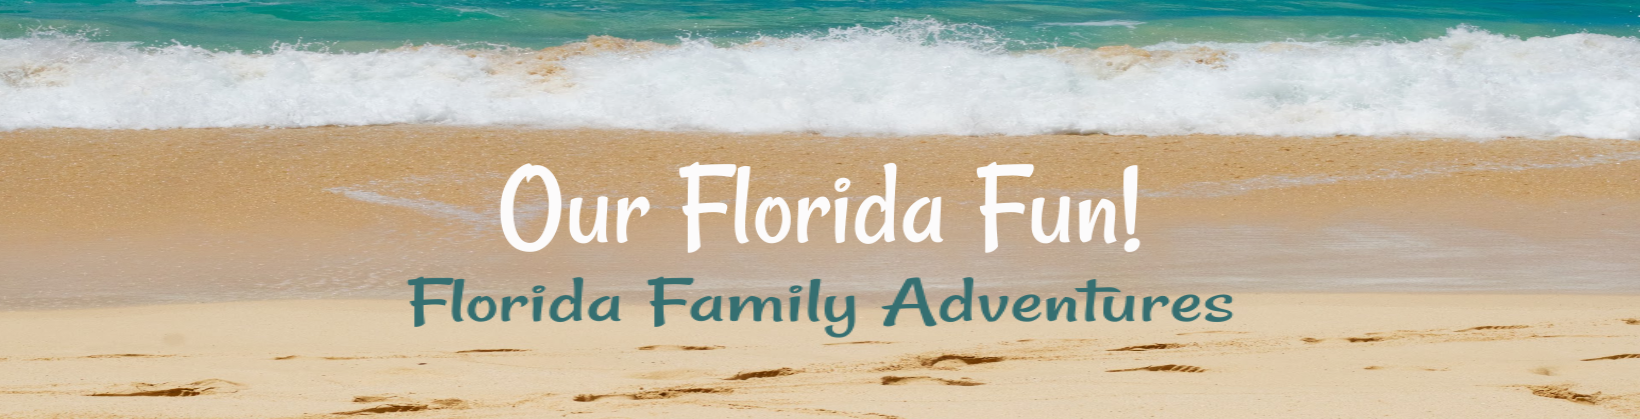 Our Florida Fun!